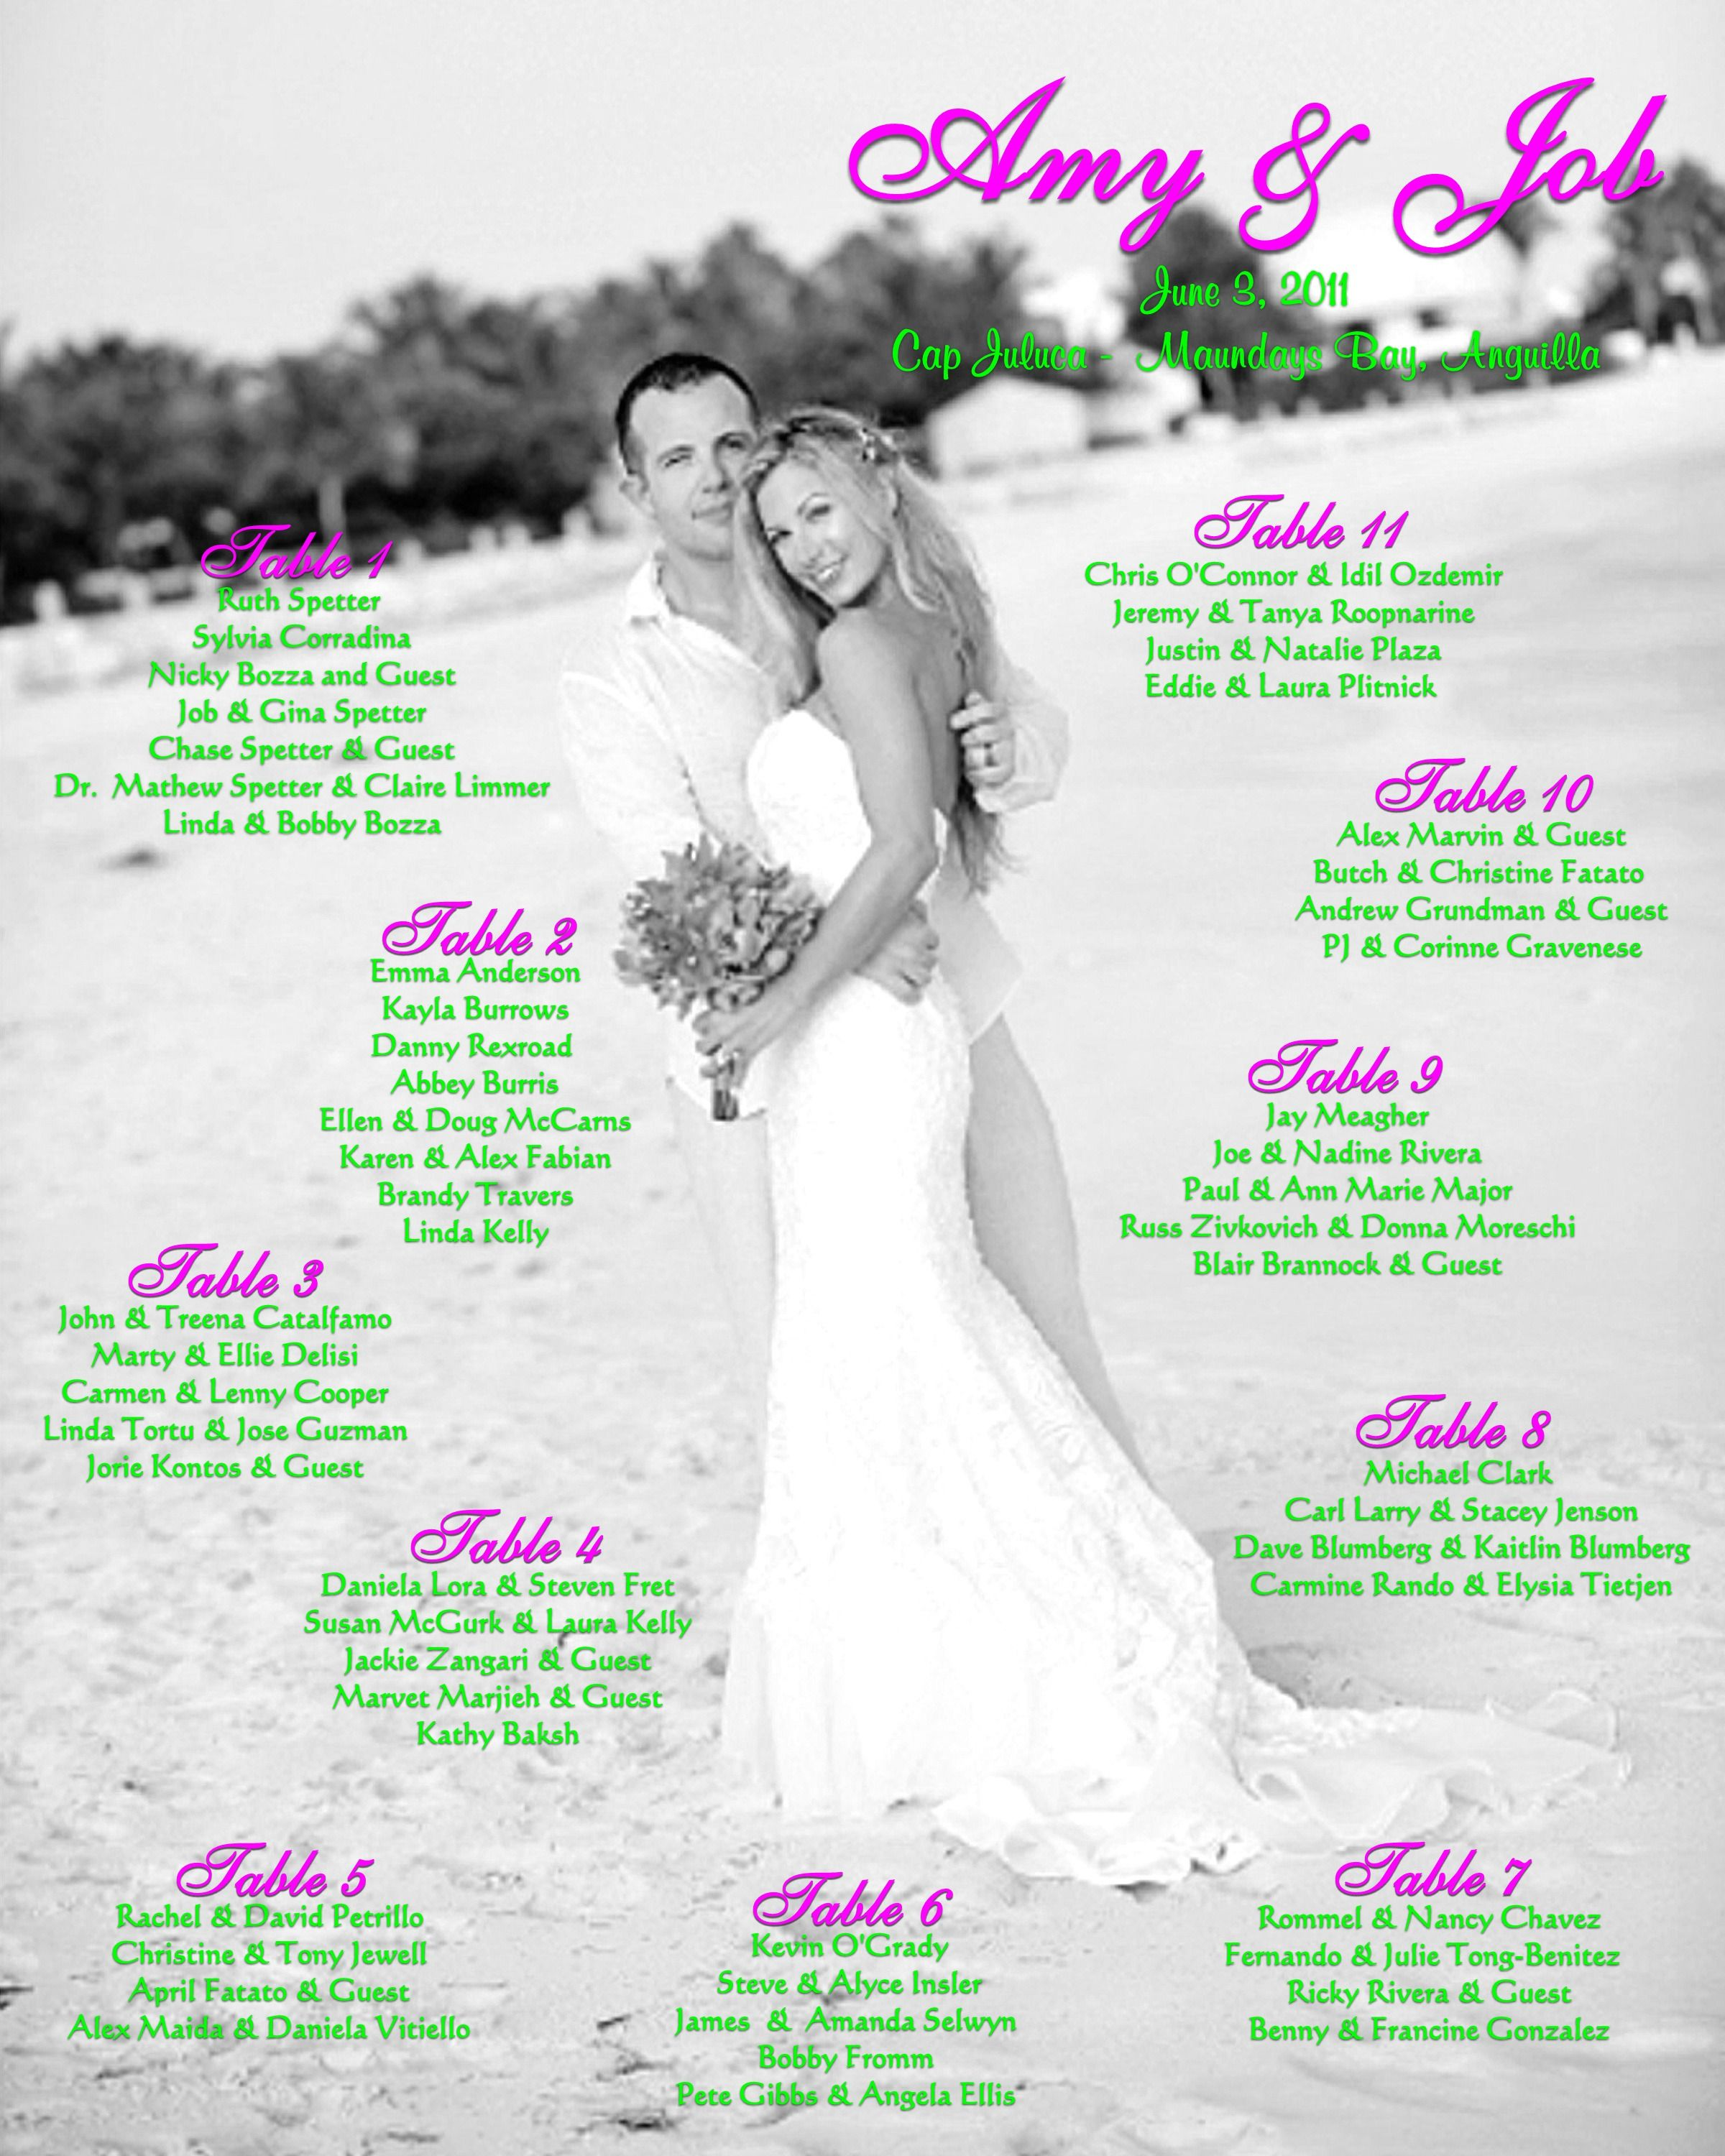 This Destination Couple S Wedding Photo Was Incorporated Into The Seating Chart For Their Stateside Reception Surrounding This 13 X 19 Photo Was A 6 White